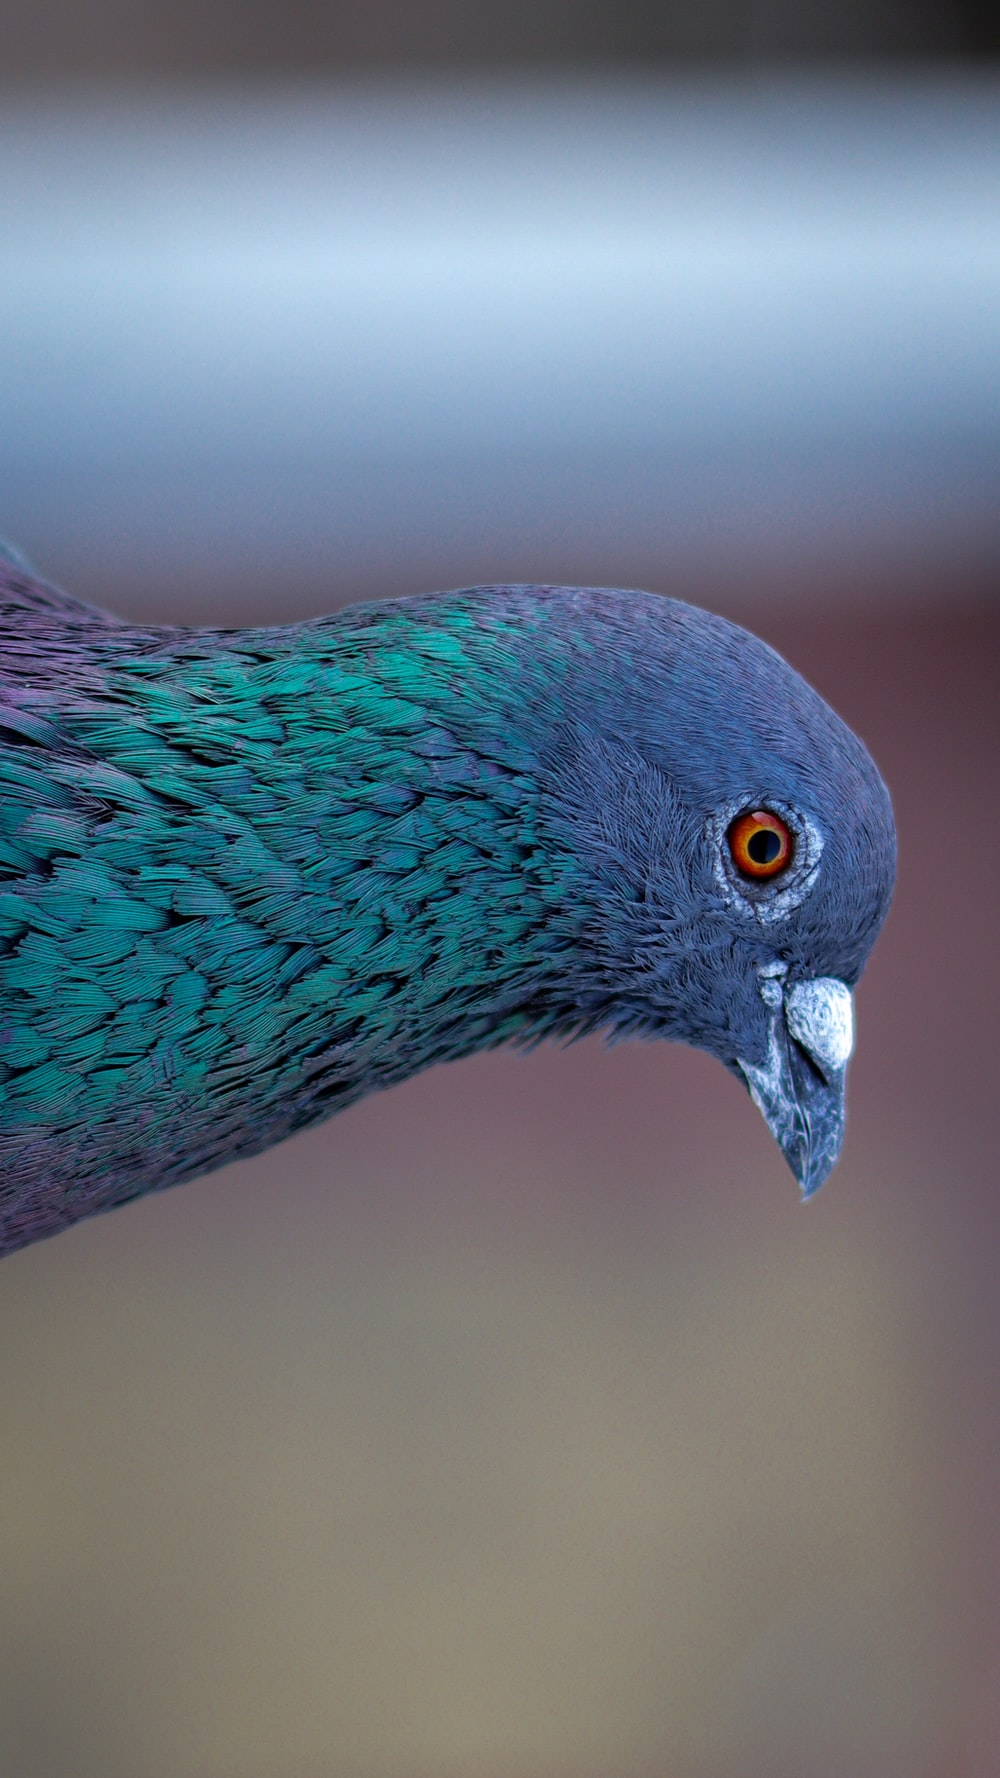 blue and gray bird in close up photography